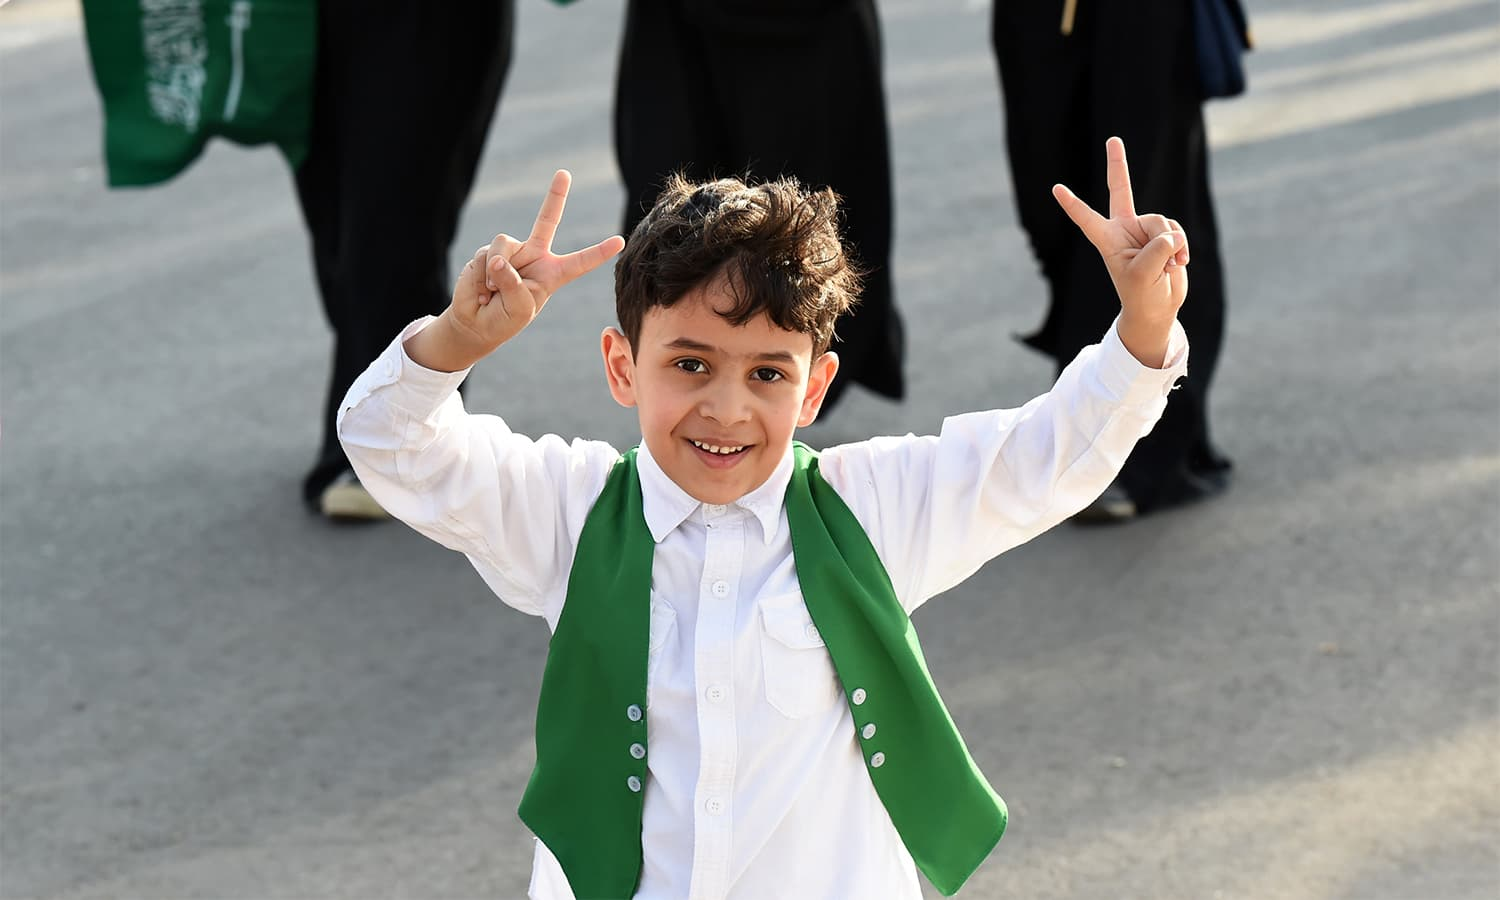 A Saudi boy flashes the victory gesture with both his hands as he arrives outside a stadium to attend an event in the capital Riyadh. — AFP